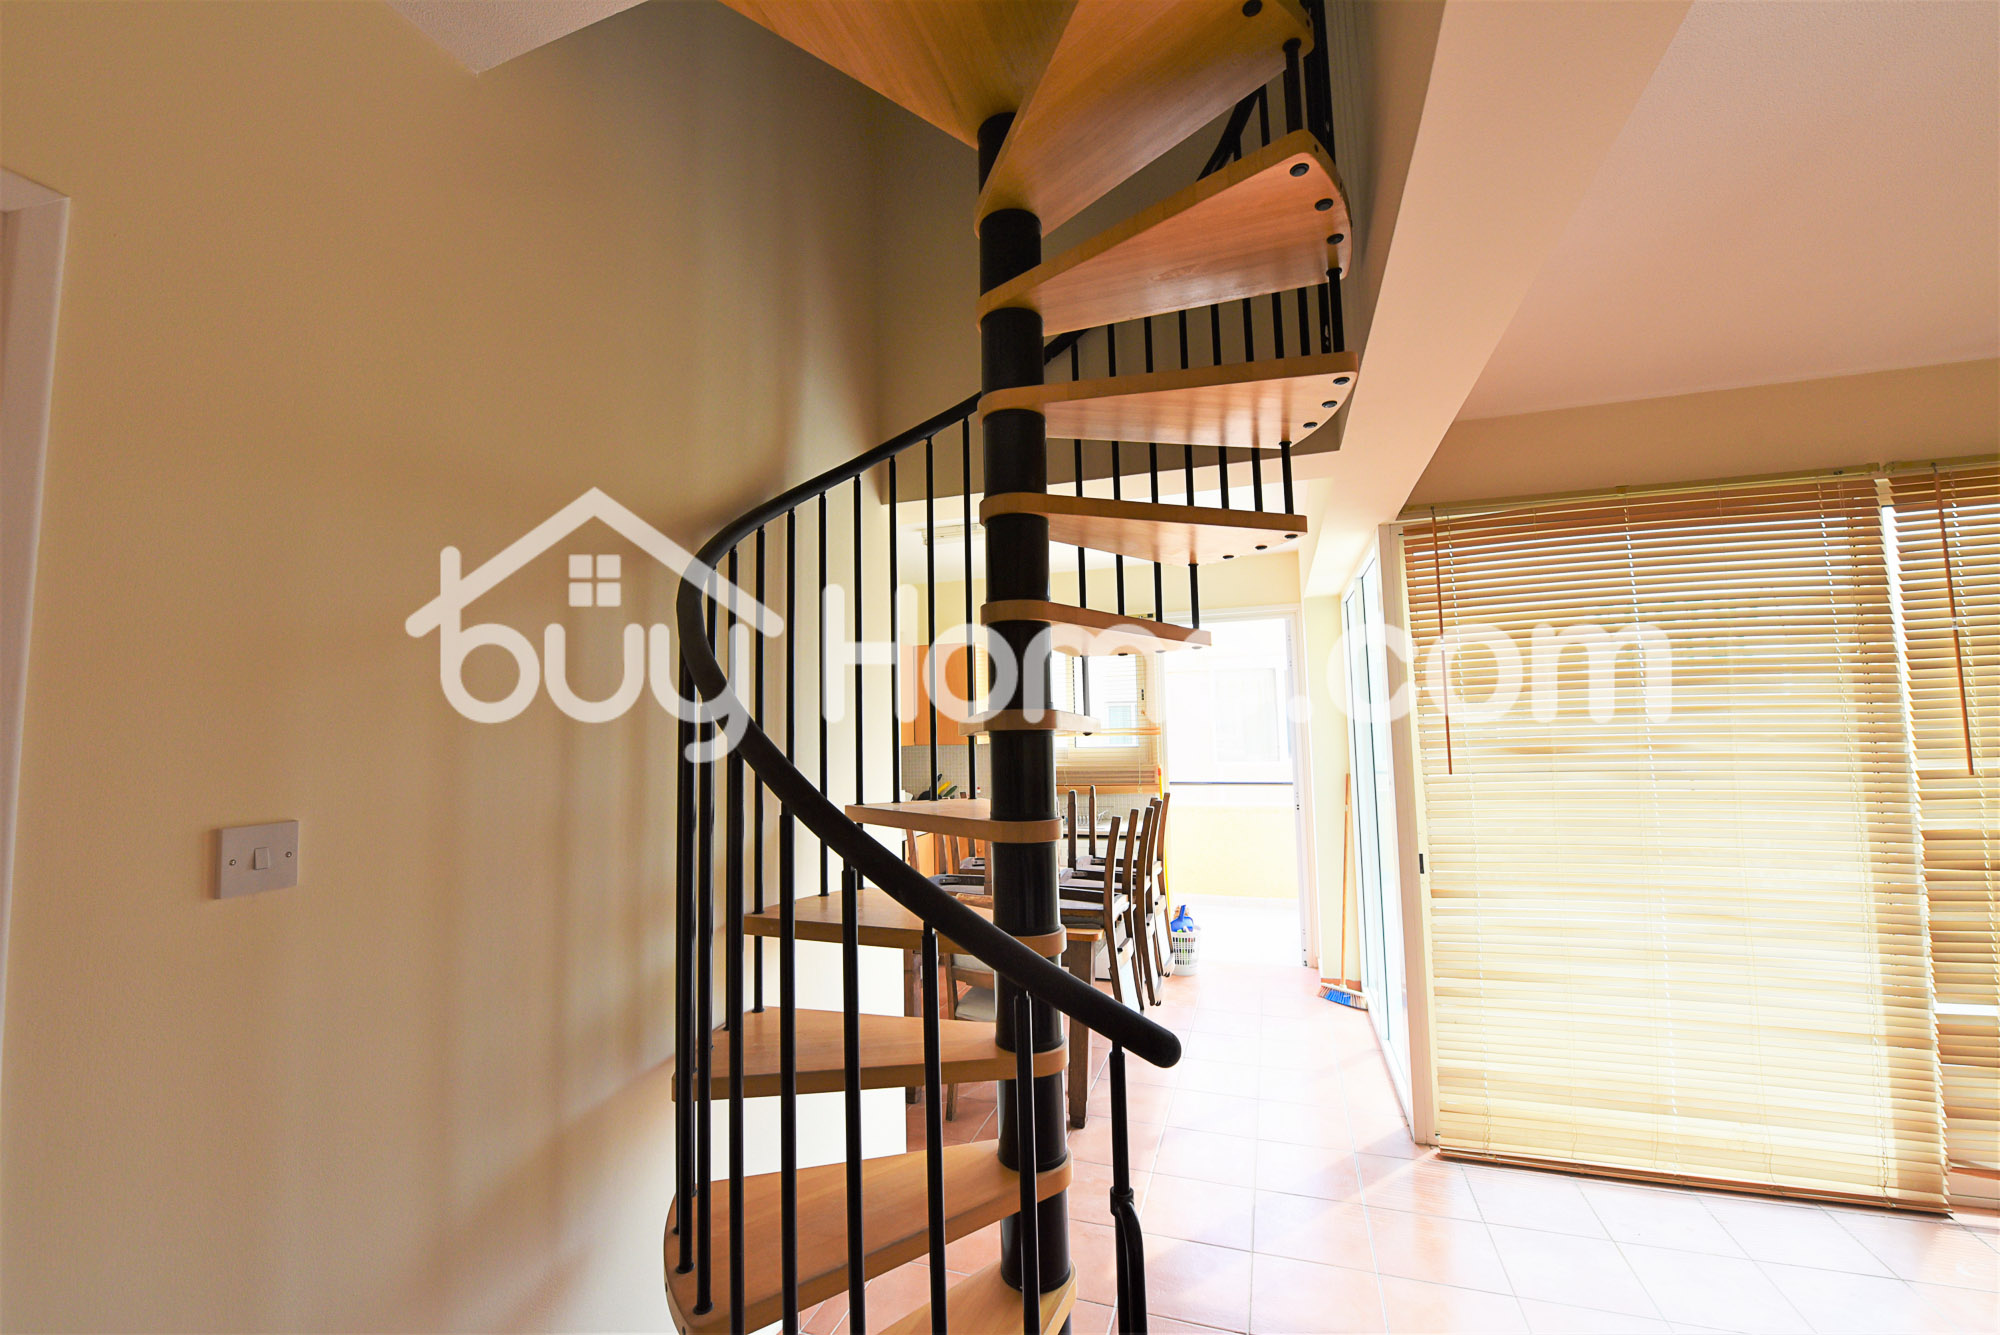 3 Bed Duplex Apartment 300m from the beach   BuyHome